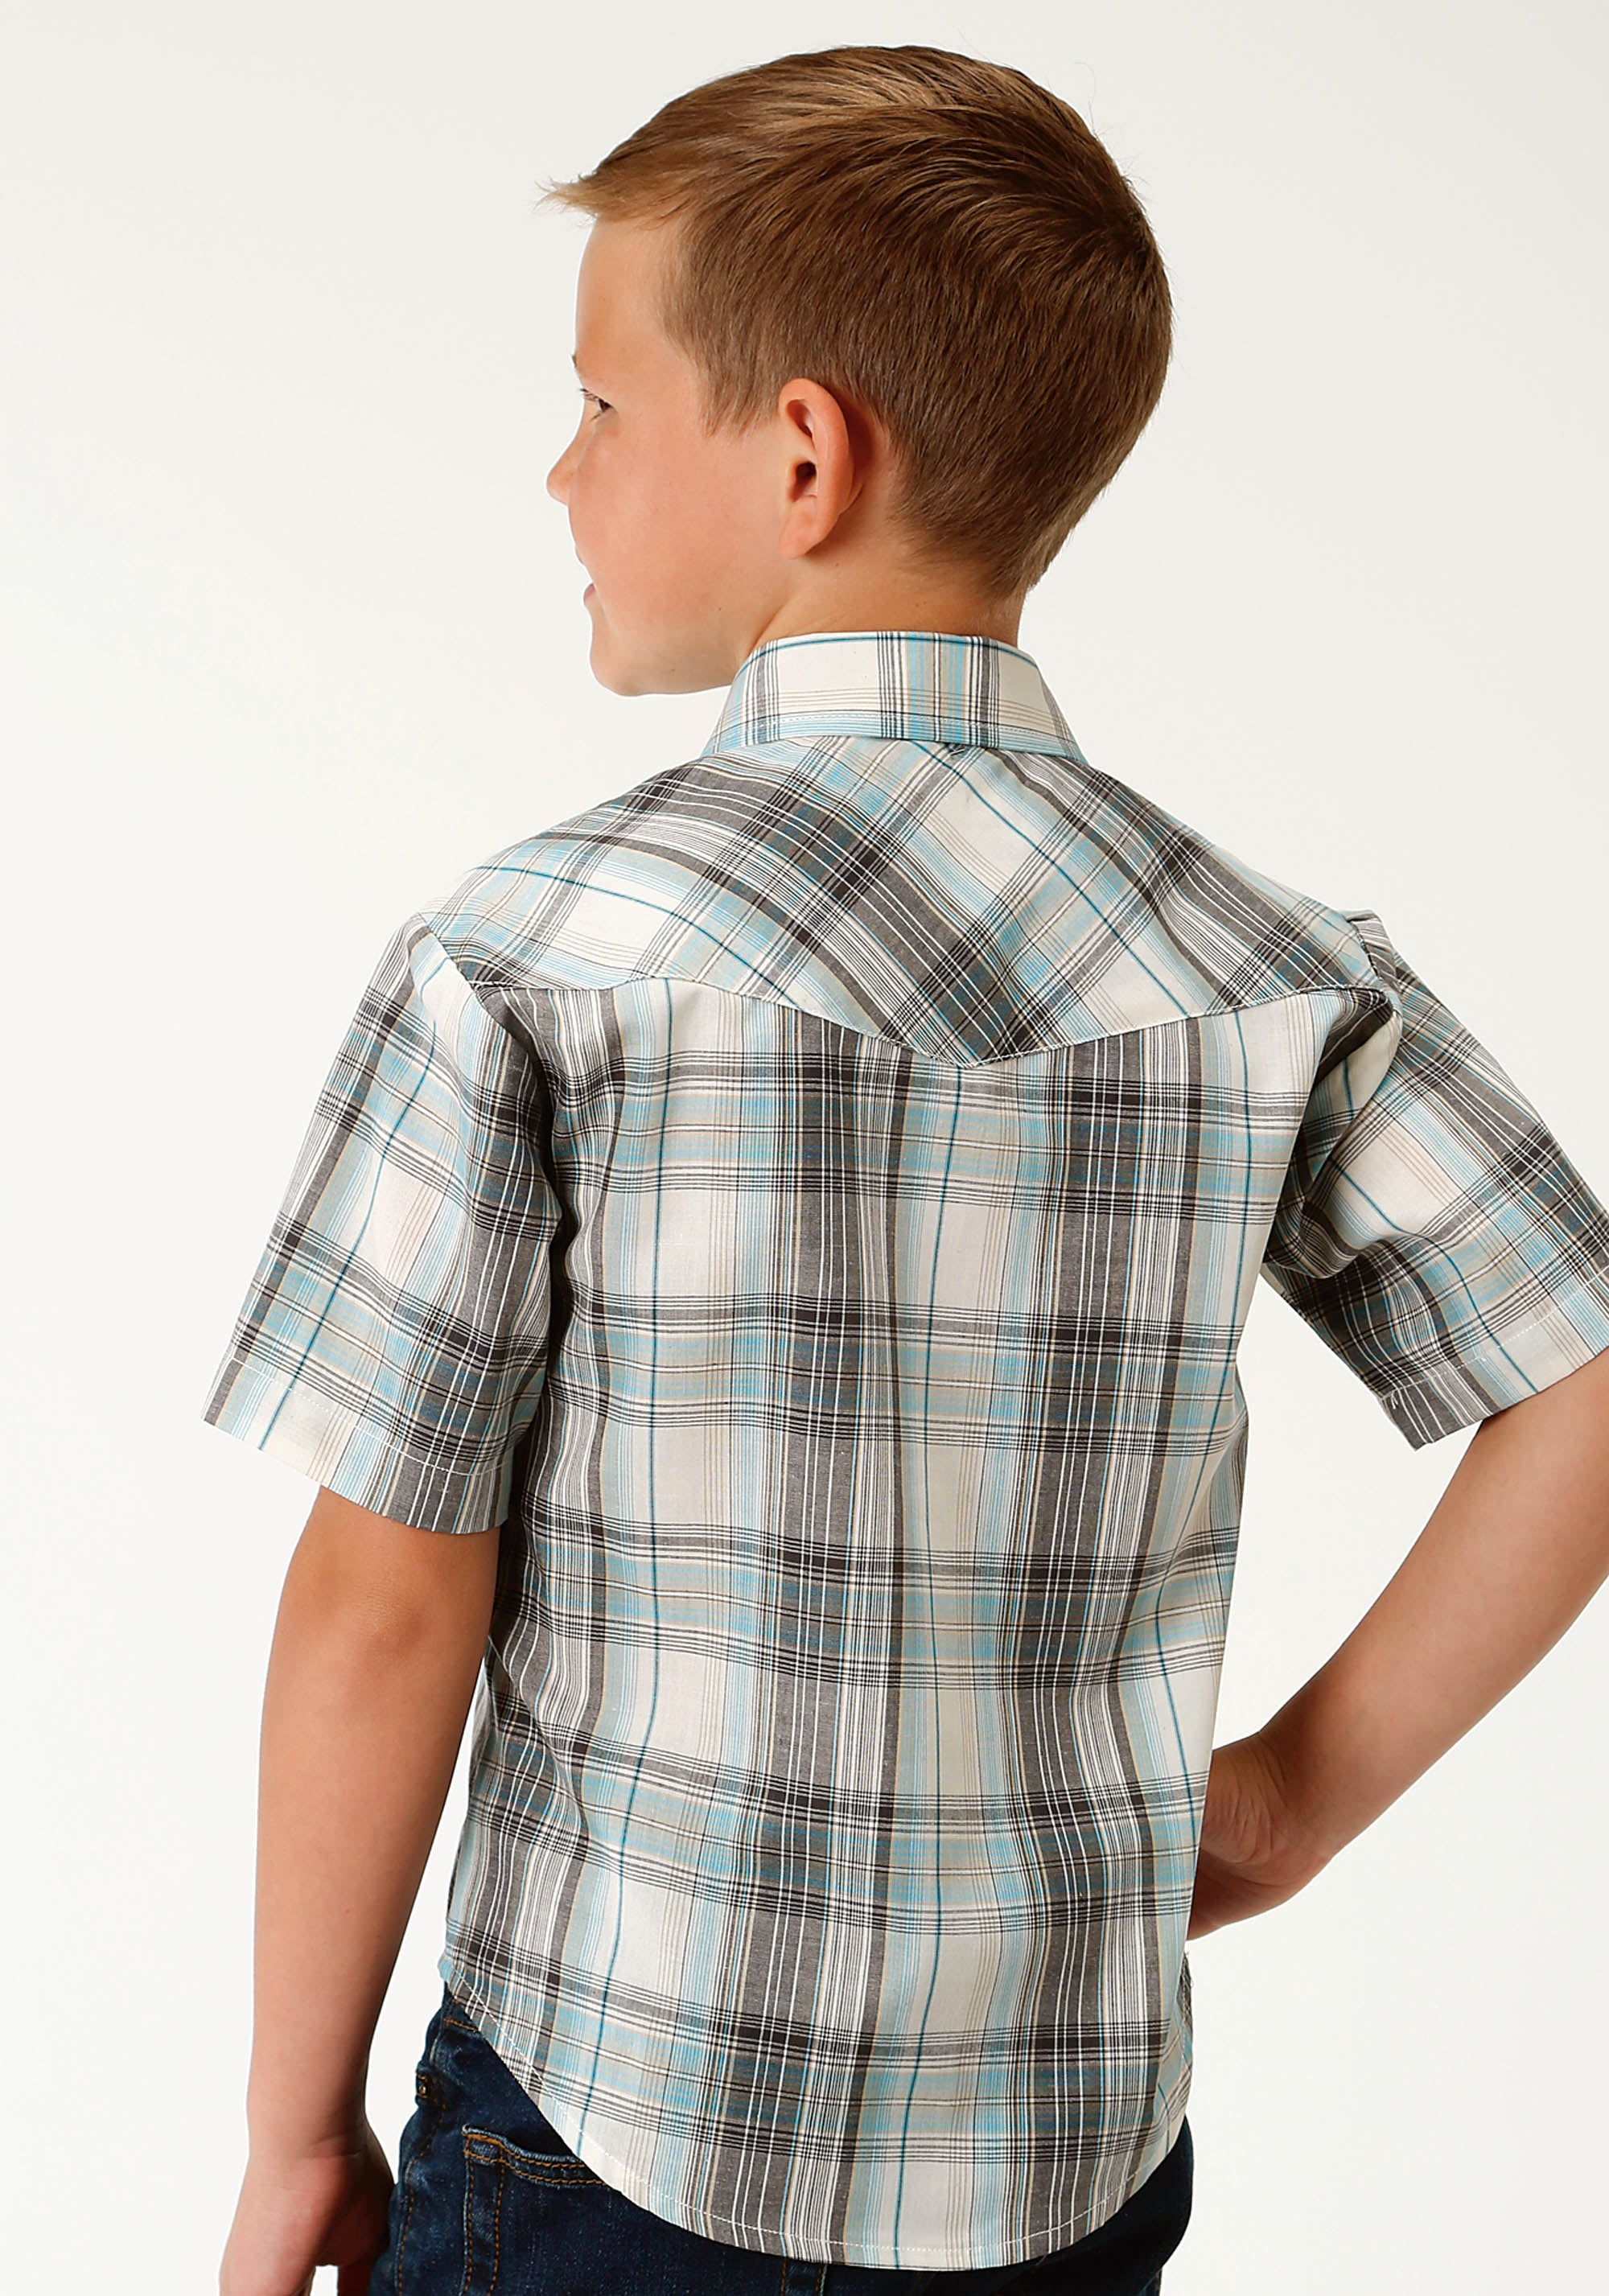 ROPER BOYS GREEN 2794 TEAL, BLACK & CREAM PLAID KARMAN CLASSICS- 55/45 PLAID SHORT SLEEVE